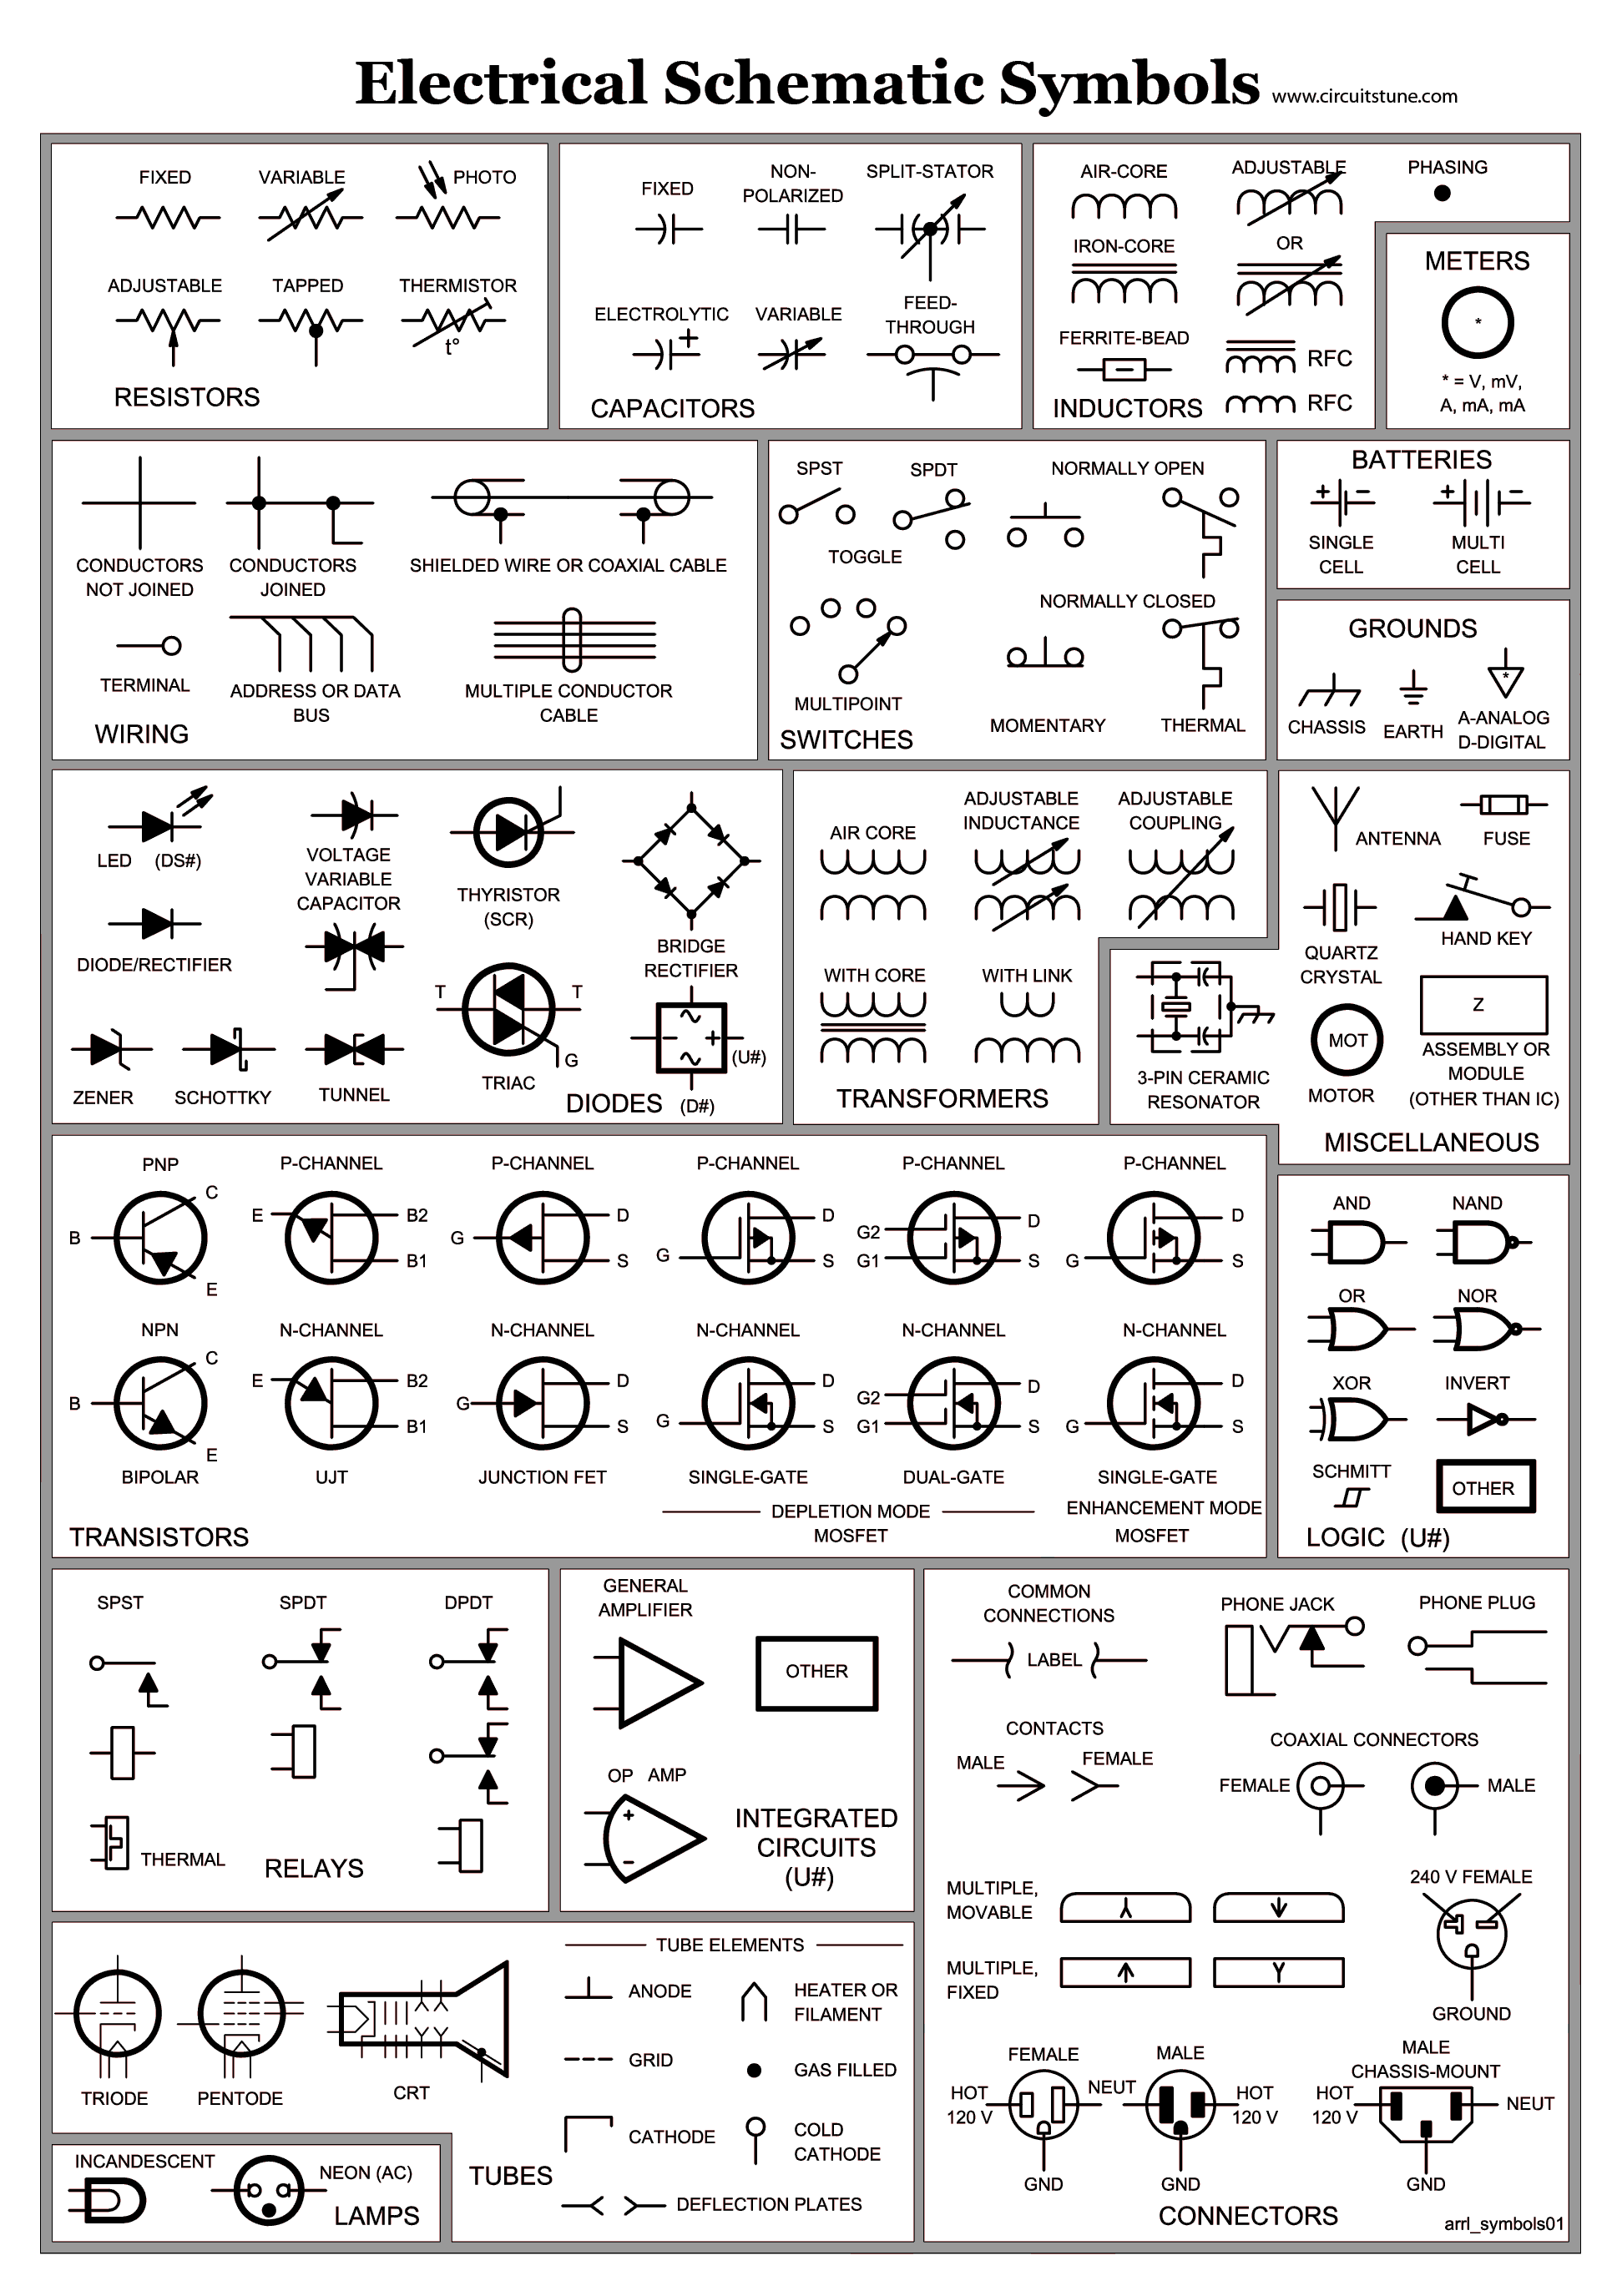 wiring diagram relay symbol electrical schematic symbols | skinsquiggles | electrical ... #14